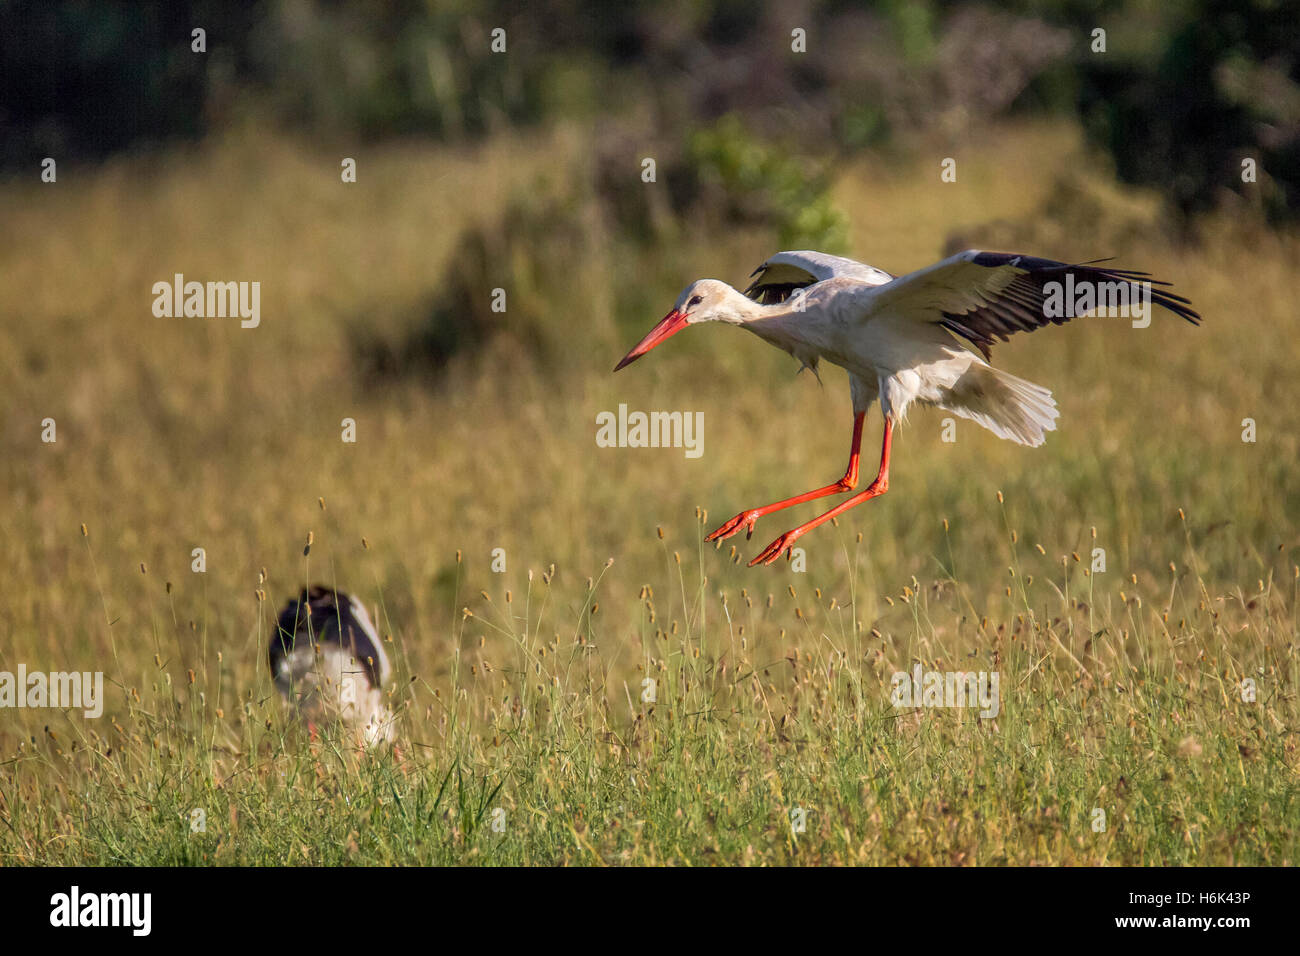 """White Stork Ciconia ciconia or European Stork,flying in to land in grassland, Laikipia Kenya Africa """"East Africa"""" Stock Photo"""